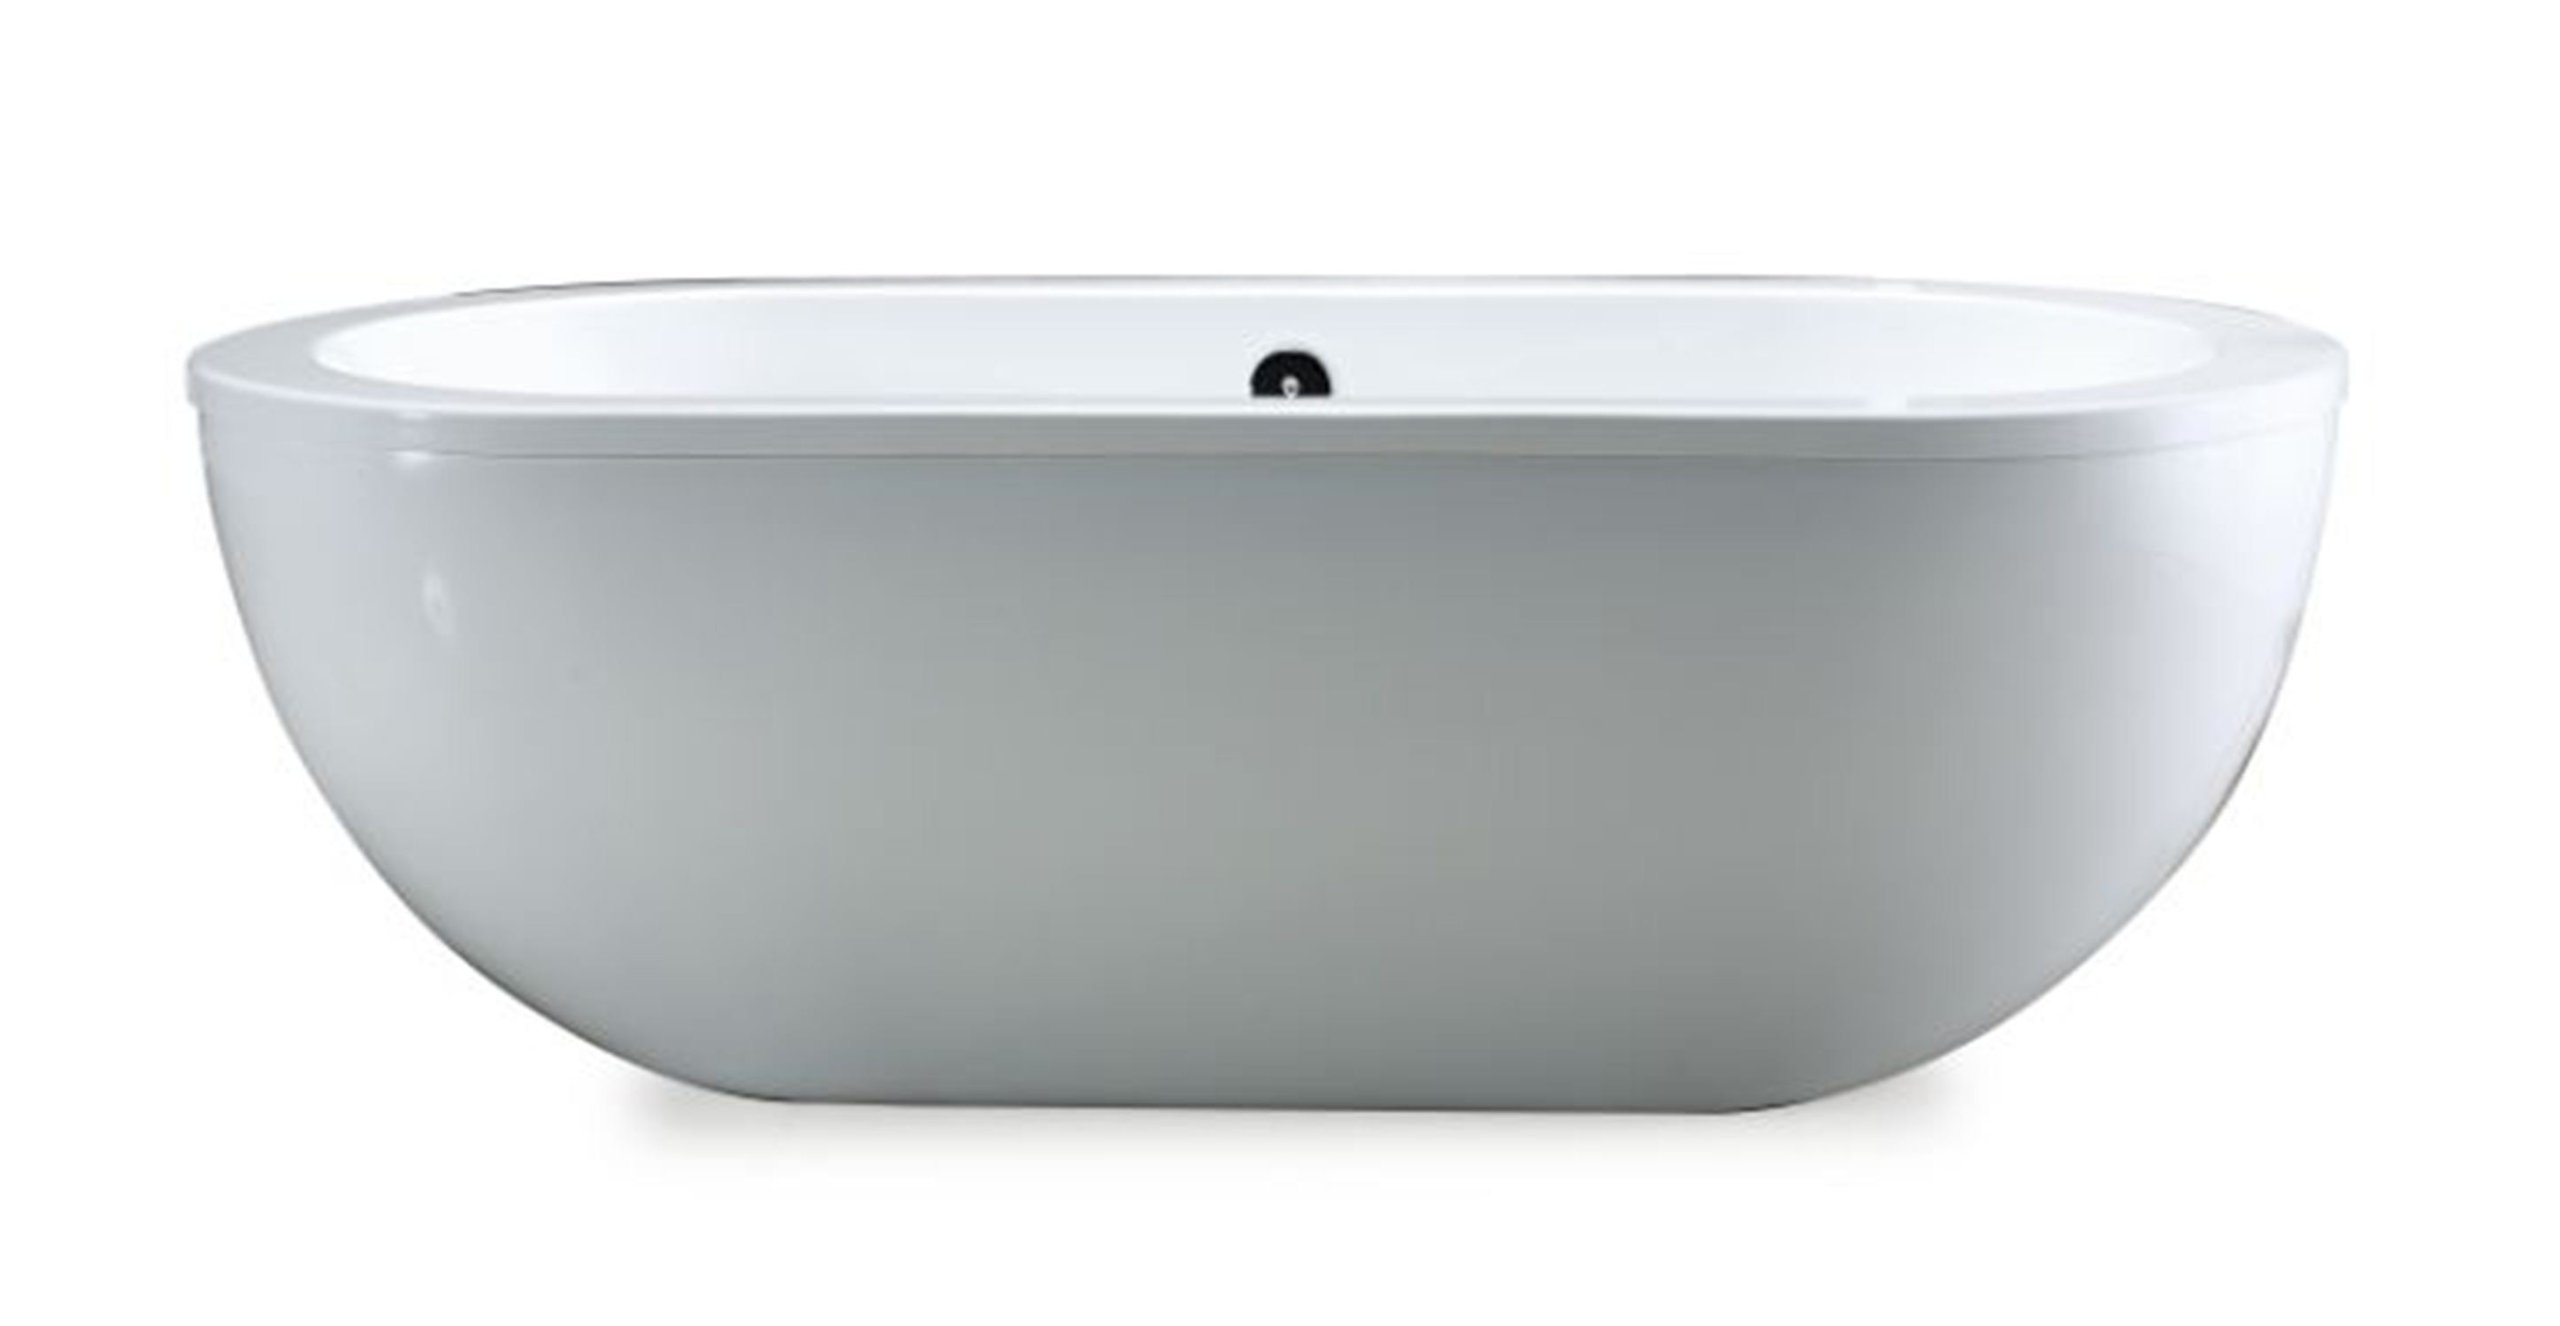 Ove Decors Serenity 71-Inch Freestanding Acrylic Bathtub, Glossy White by Ove Decors